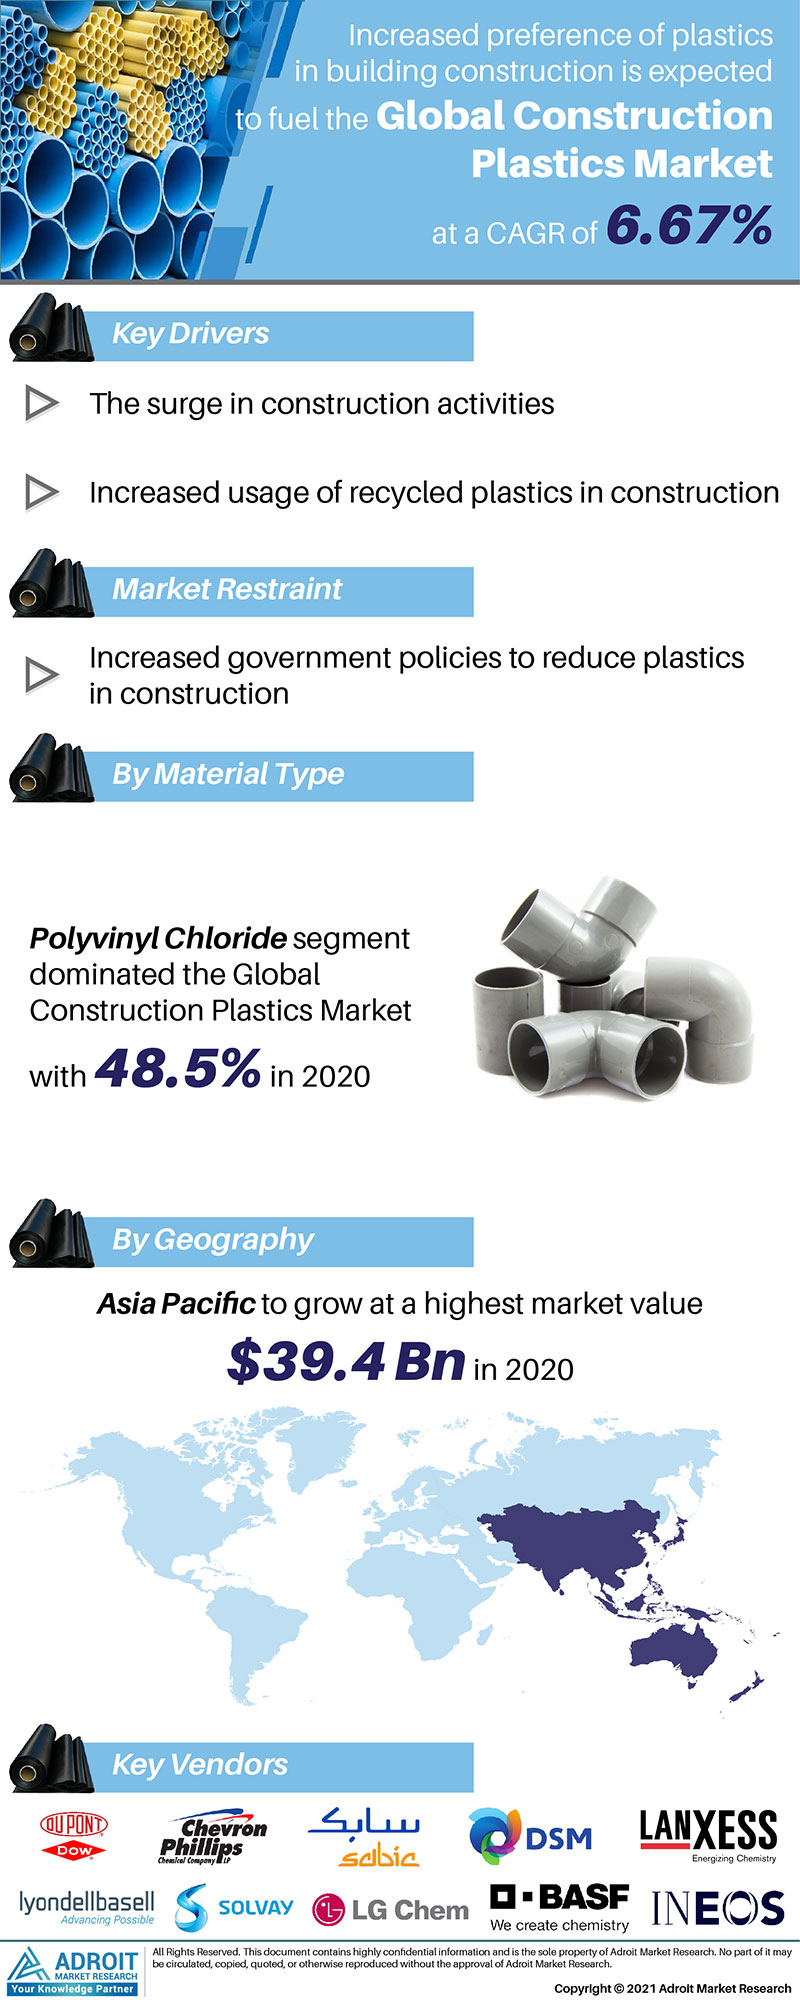 Construction Plastics Market Size 2017 By Application, Product, Region and Forecast 2019 to 2025